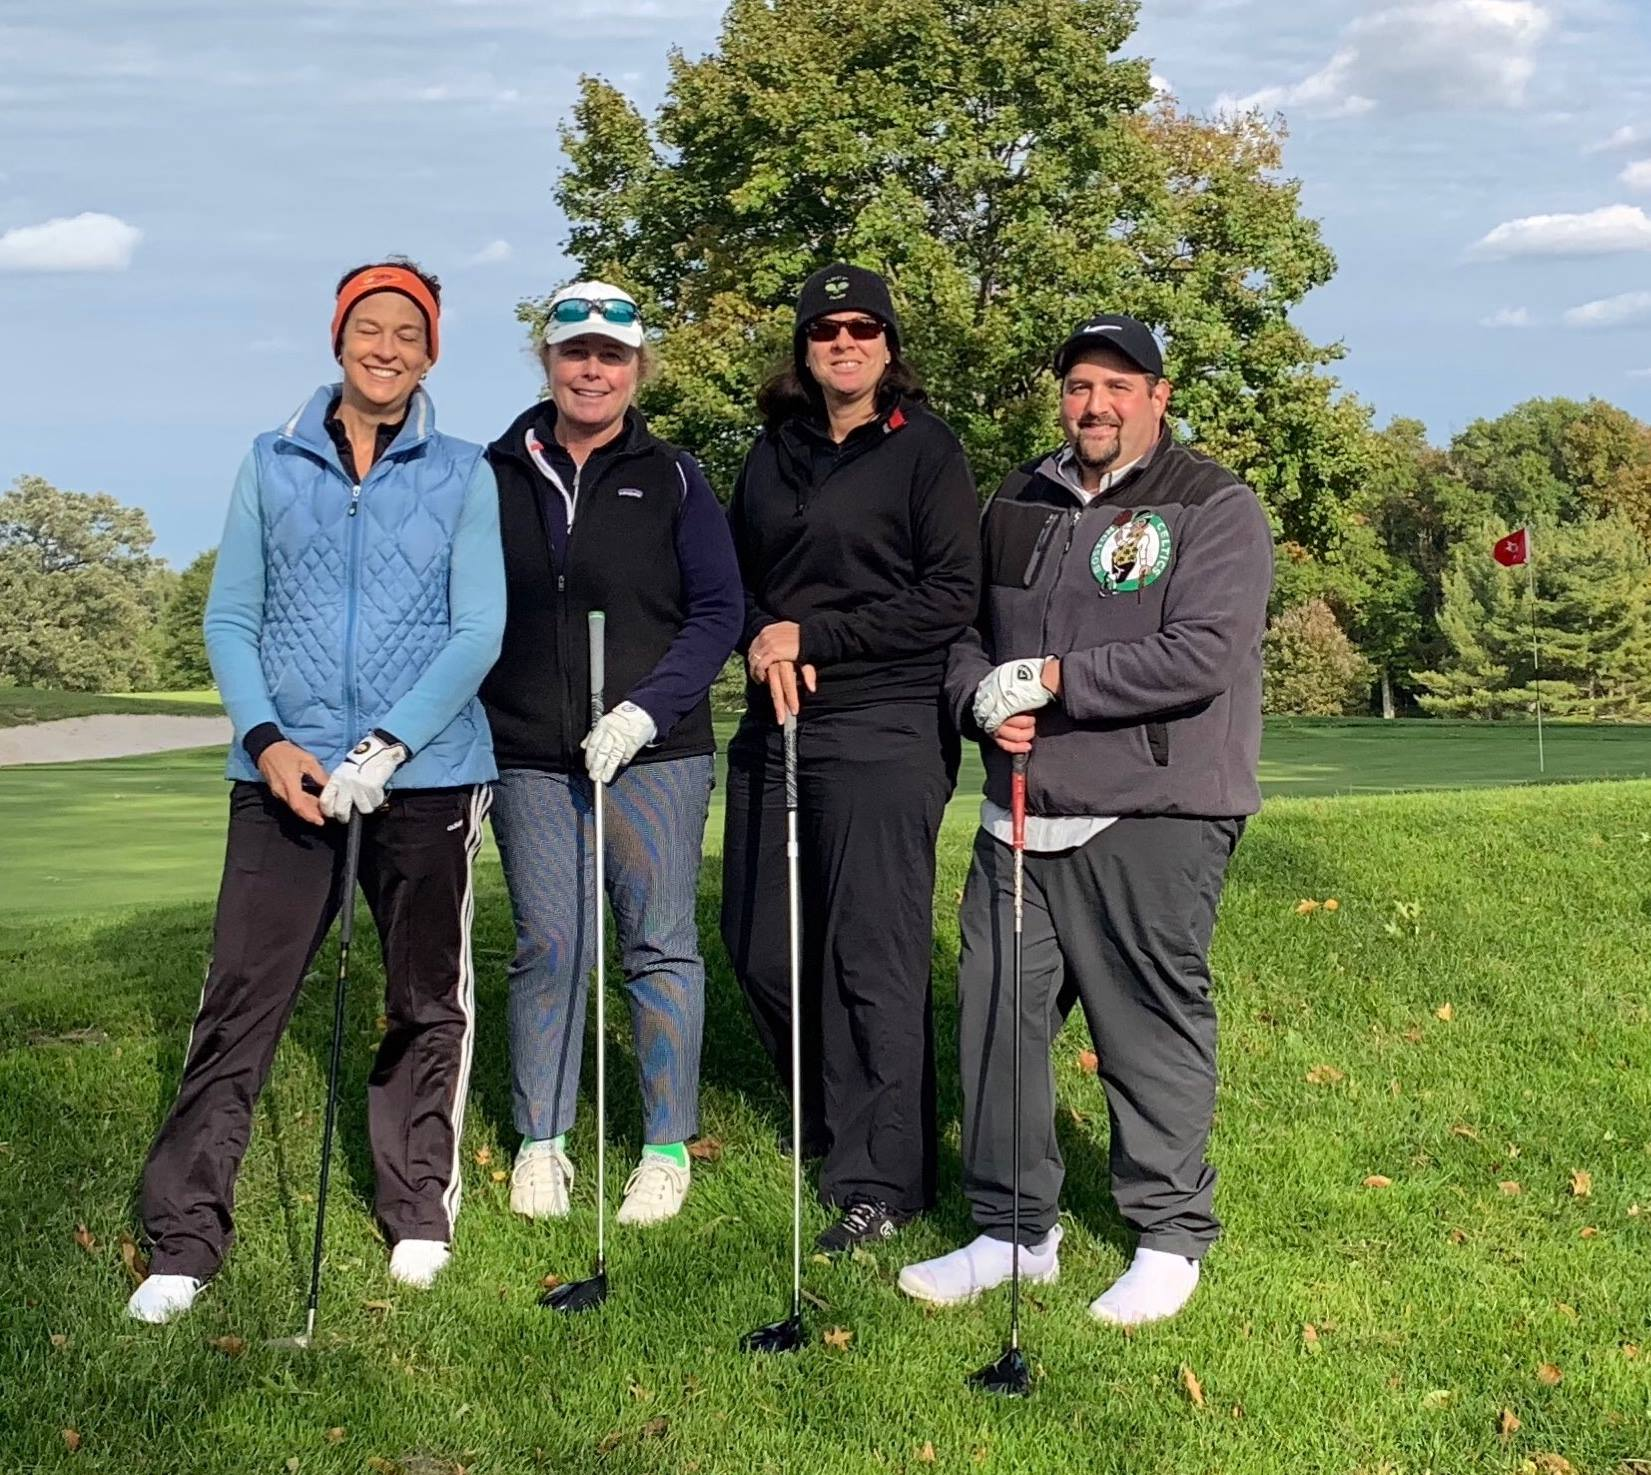 Mendham Business Golf